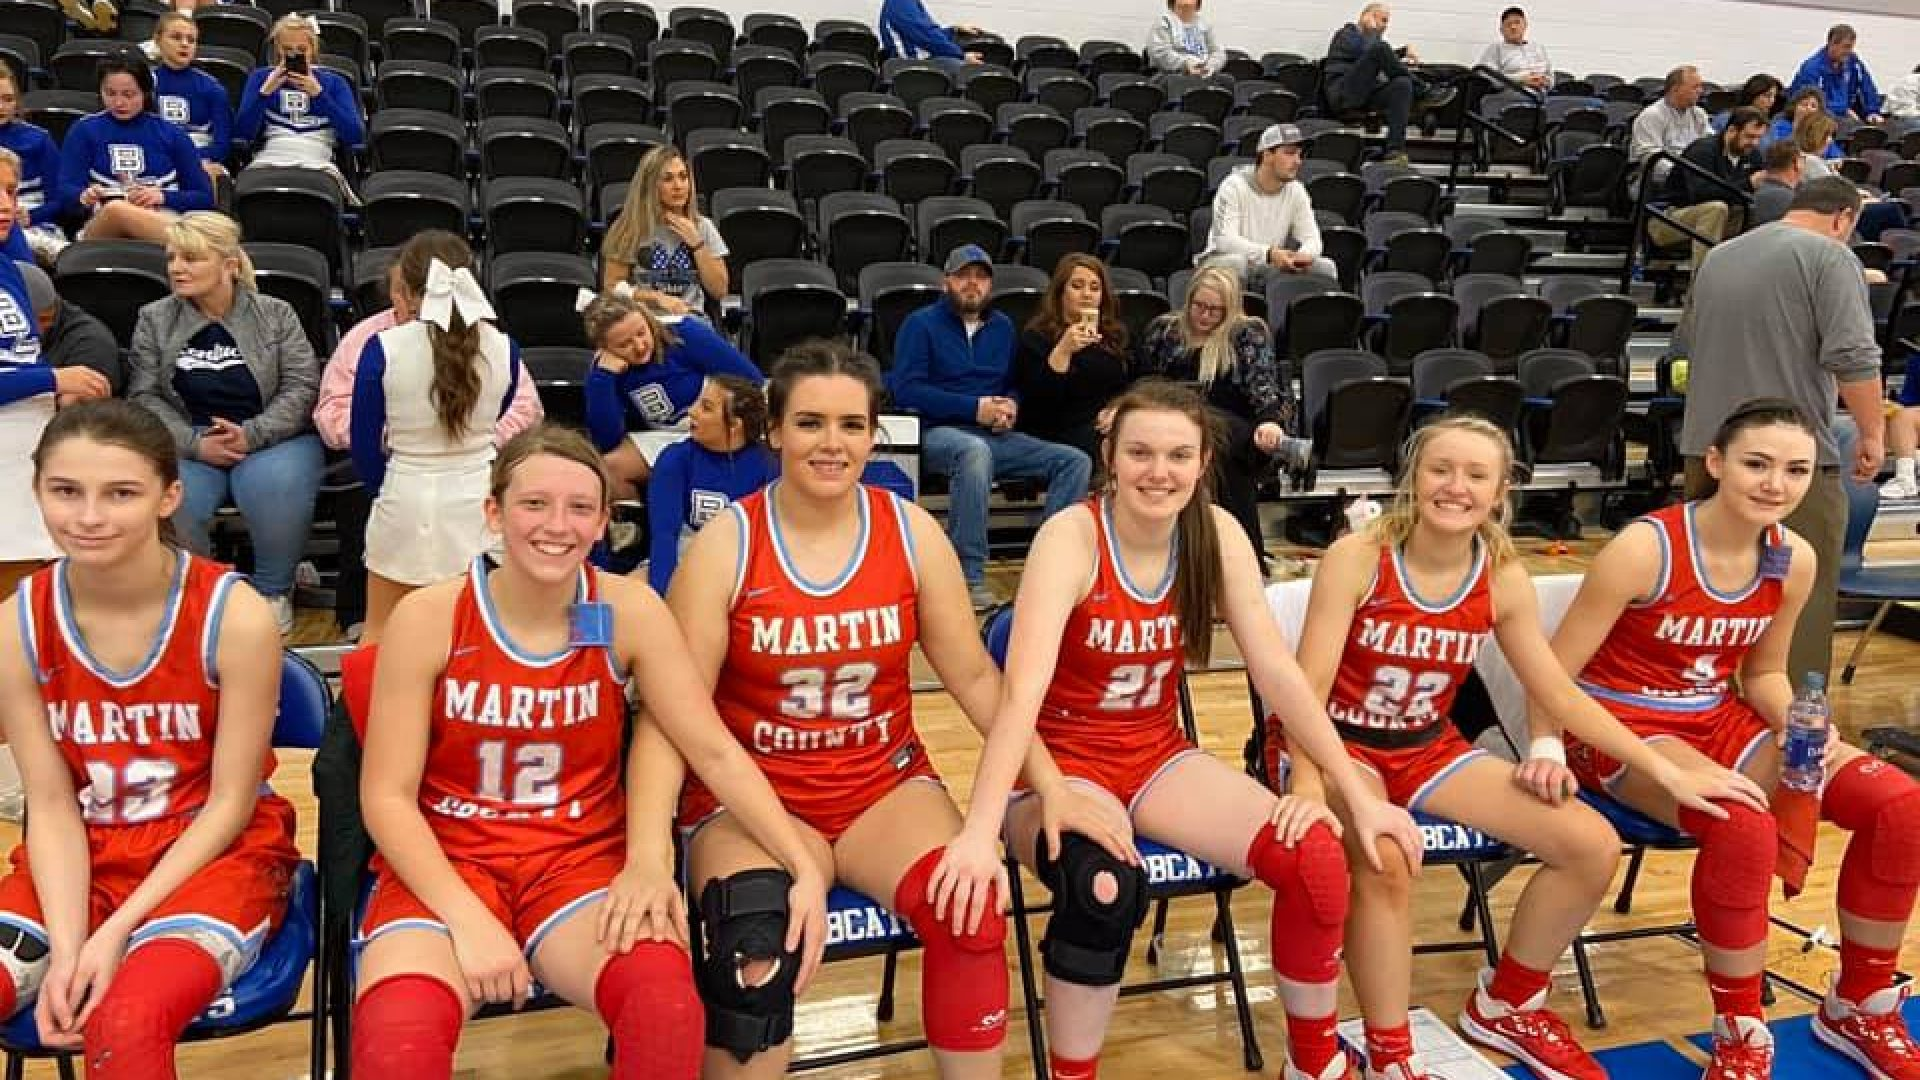 57TH DISTRICT TOURNAMENT: Lady Cards, Lady Eagles advance